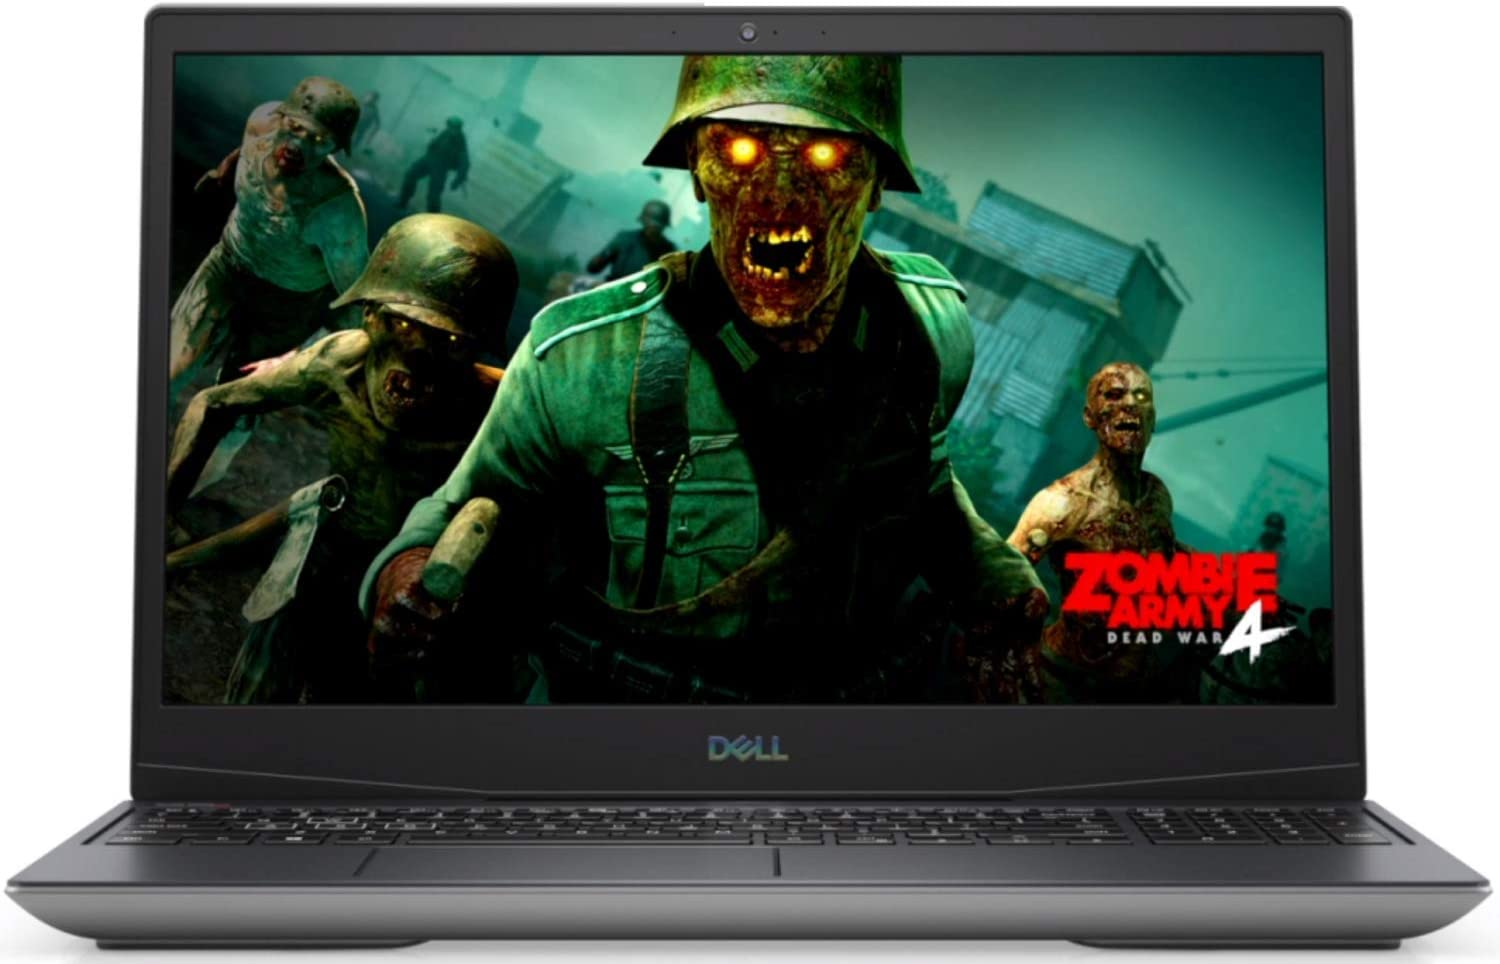 "Newest Dell G5 SE 5505 15.6"" FHD IPS High Performance Gaming Laptop, AMD 4th Gen Ryzen 5 4600H 6-core, 32GB RAM, 1TB PCIe SSD, Backlit Keyboard, AMD Radeon RX 5600M, Windows 10"